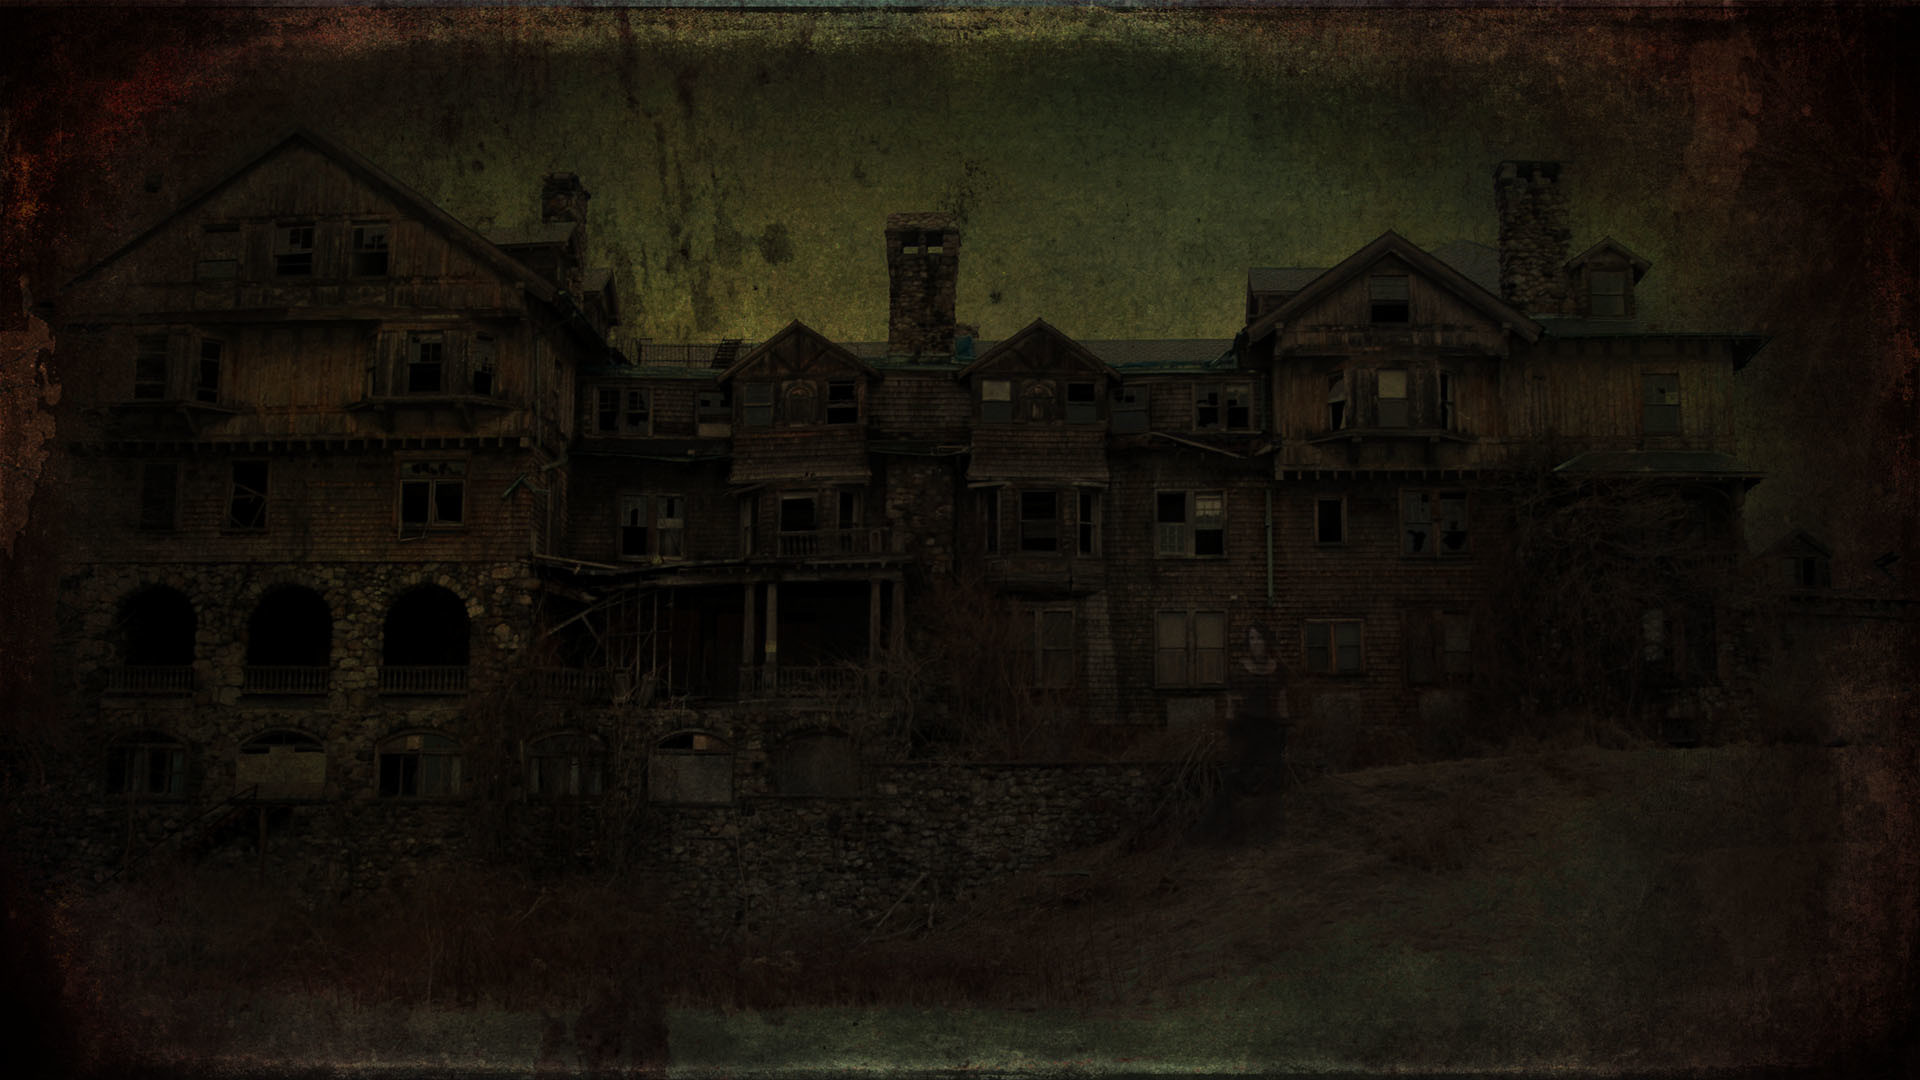 Res: 1920x1080, Previous: Haunted House ...